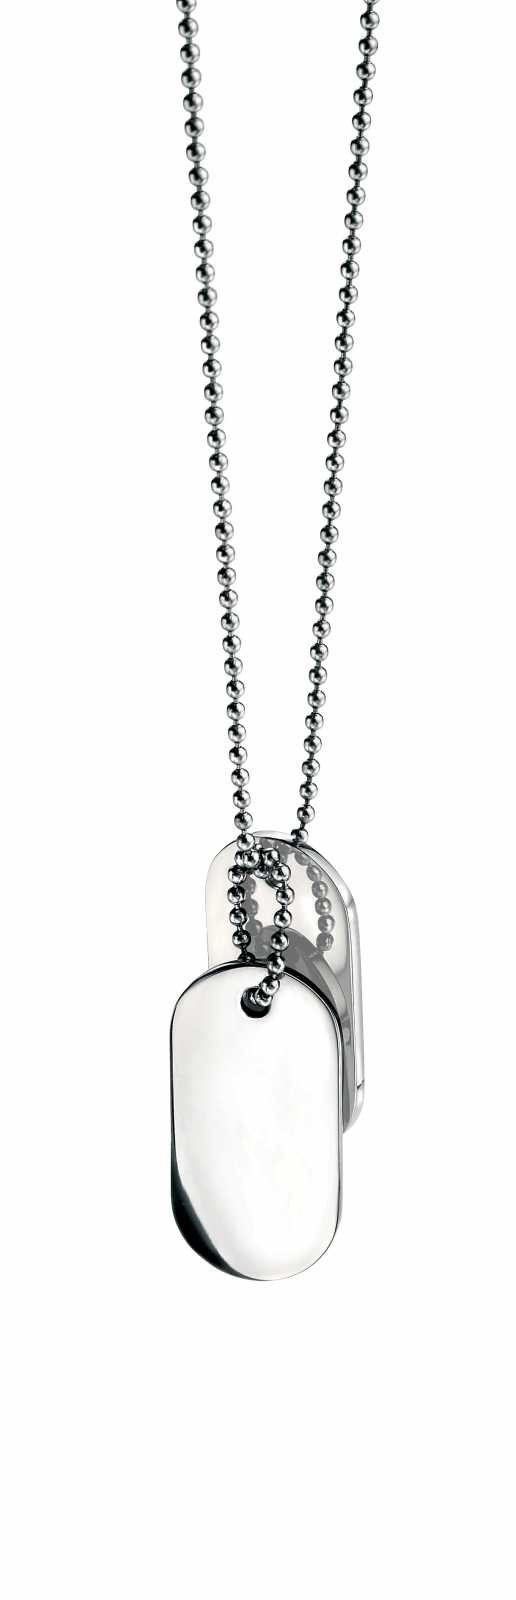 Fred Bennett Stainless Steel Oval Dogtags Chain Necklace N2686